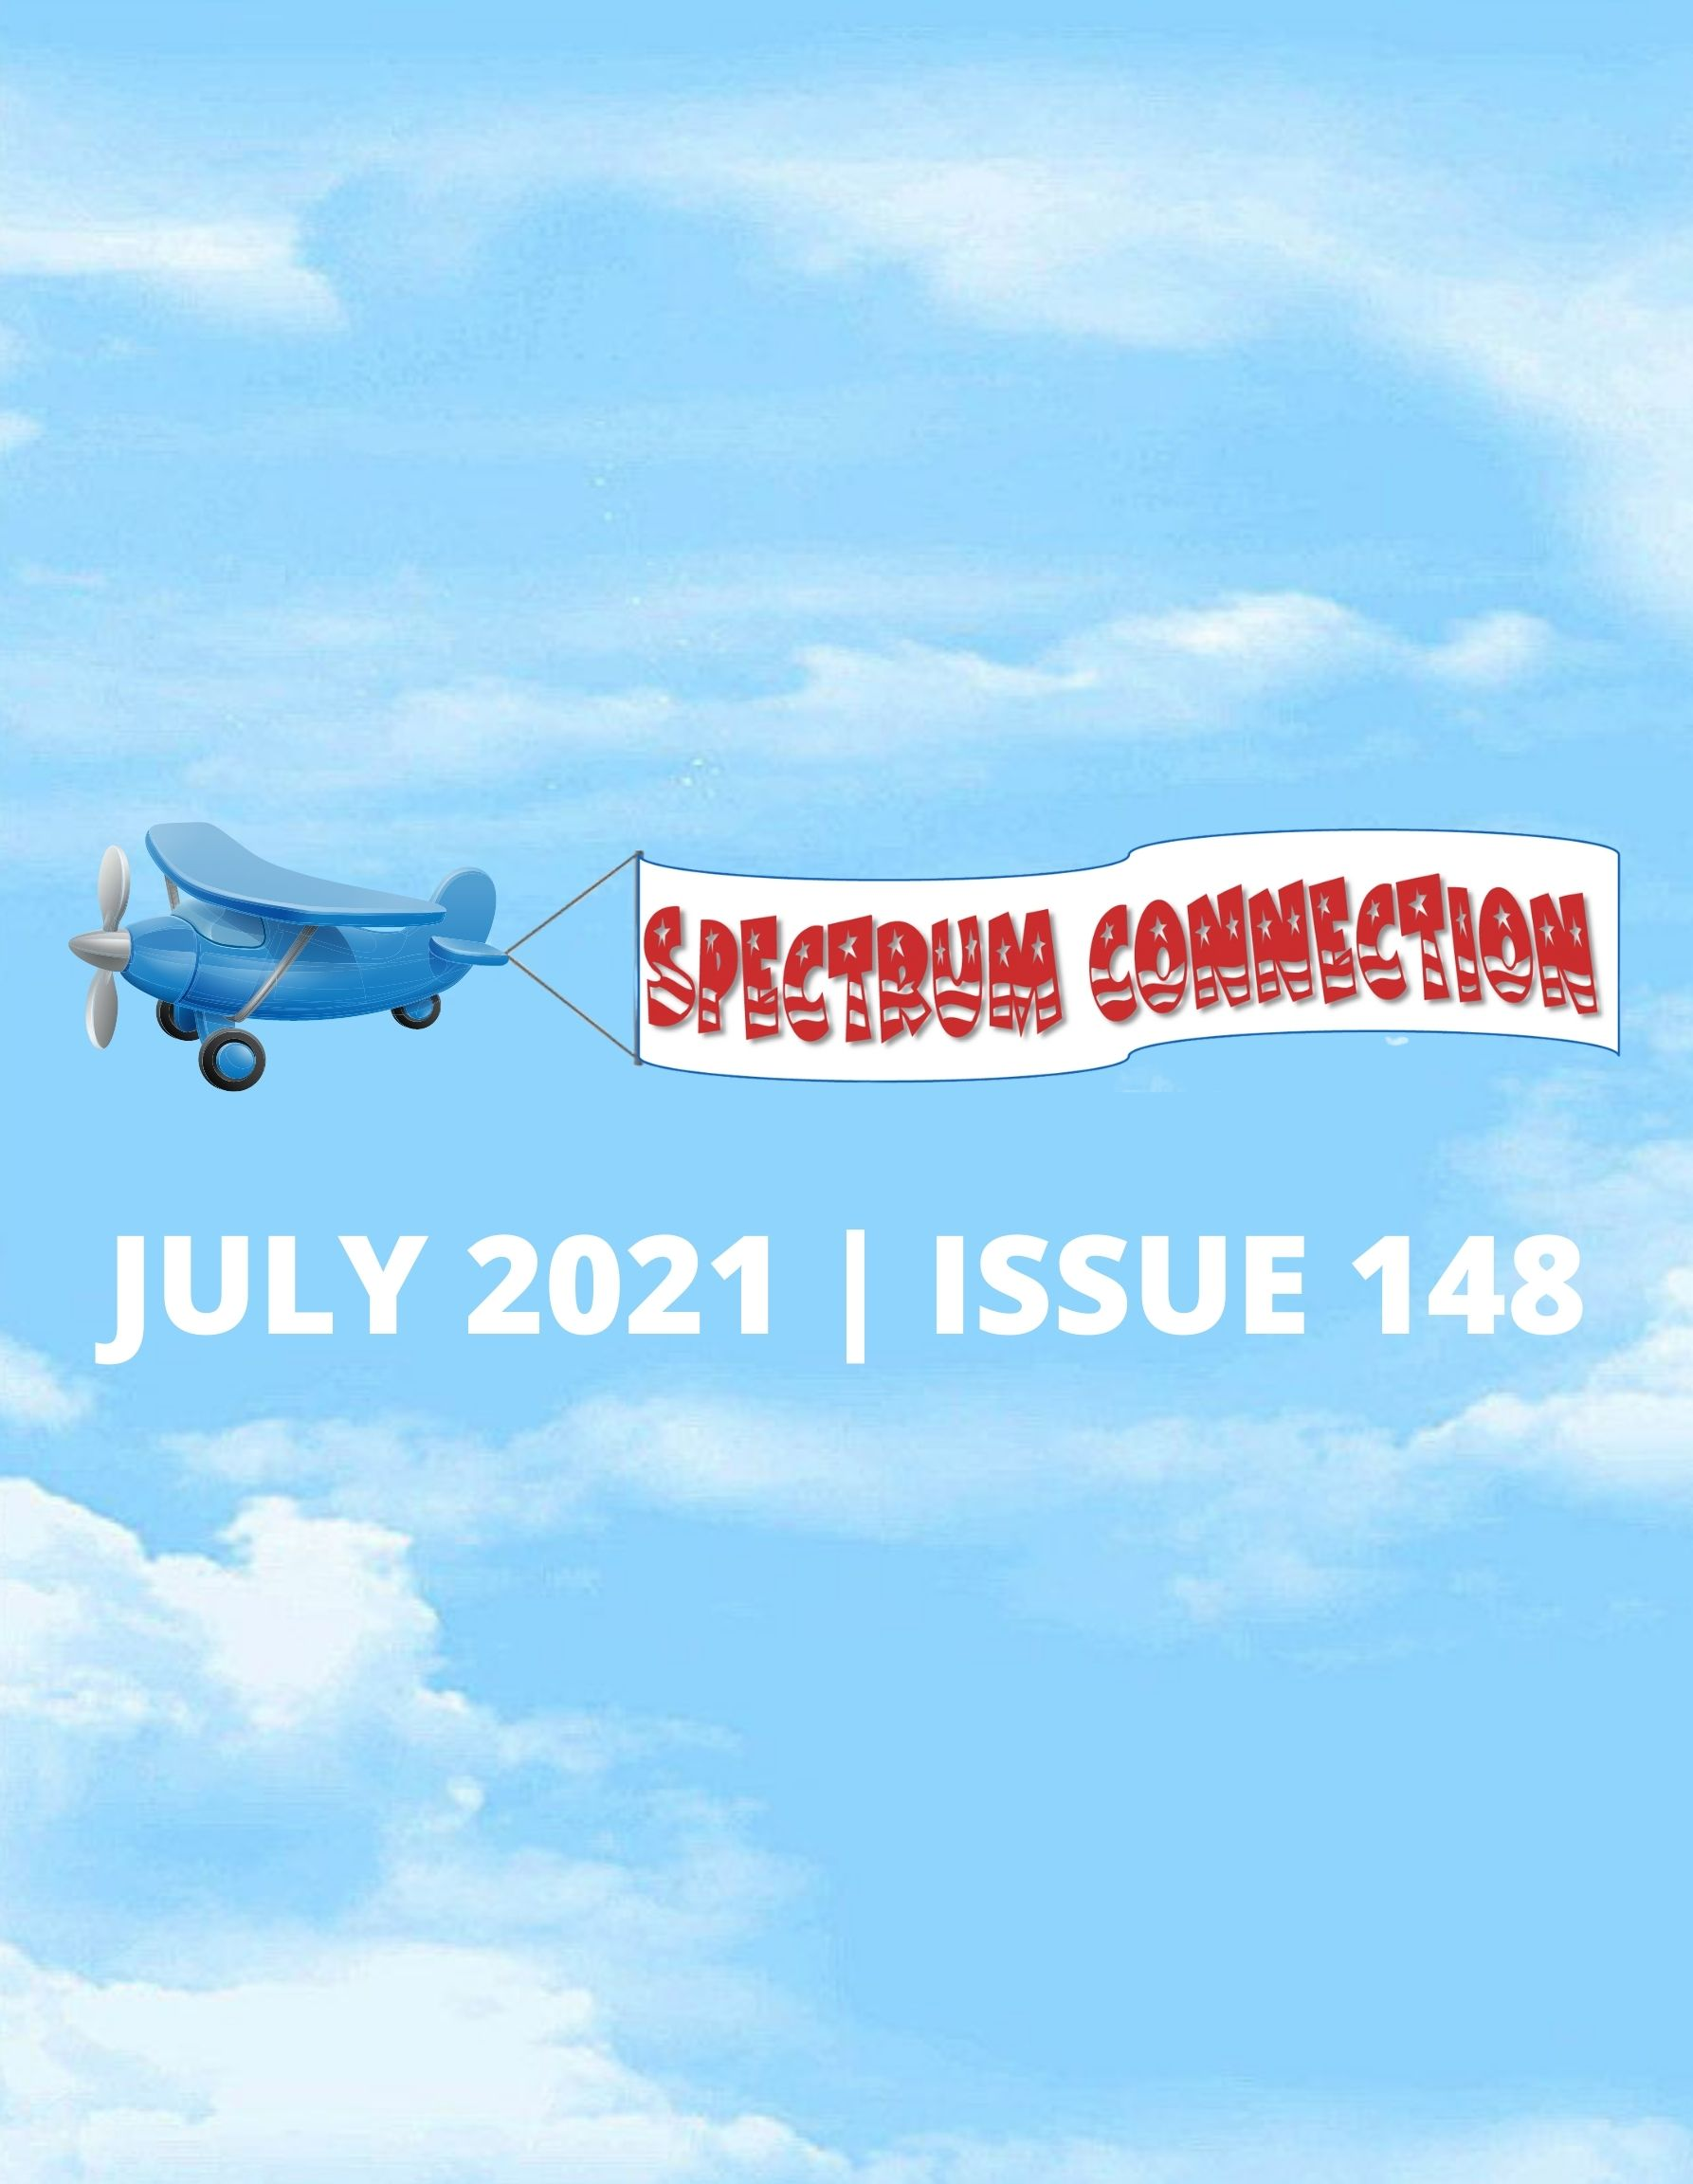 July 2021 Issue 148